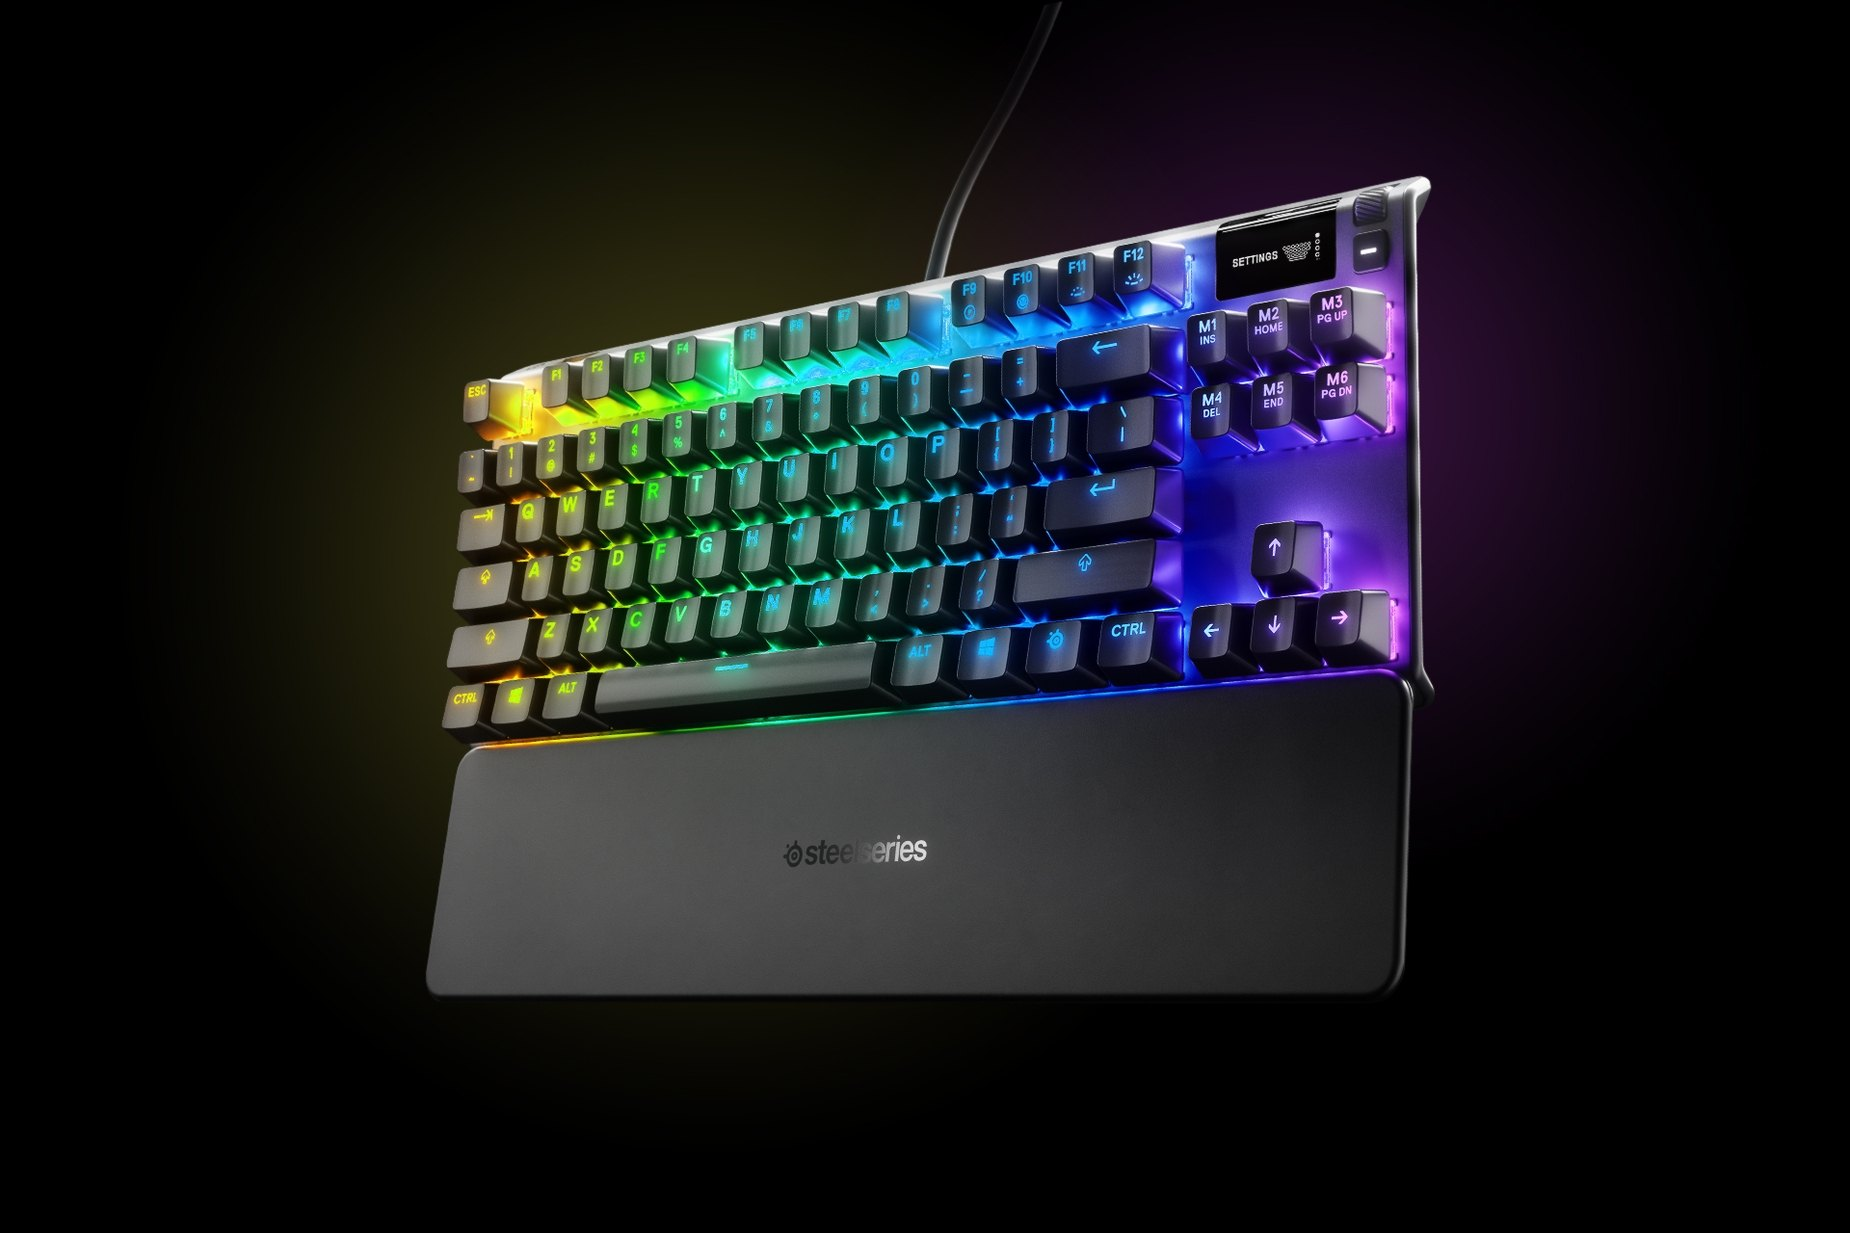 US English - Apex 7 TKL (Brown Switch) gaming keyboard with the illumination lit up on dark background, also shows the OLED screen and controls used to change settings and adjust audio